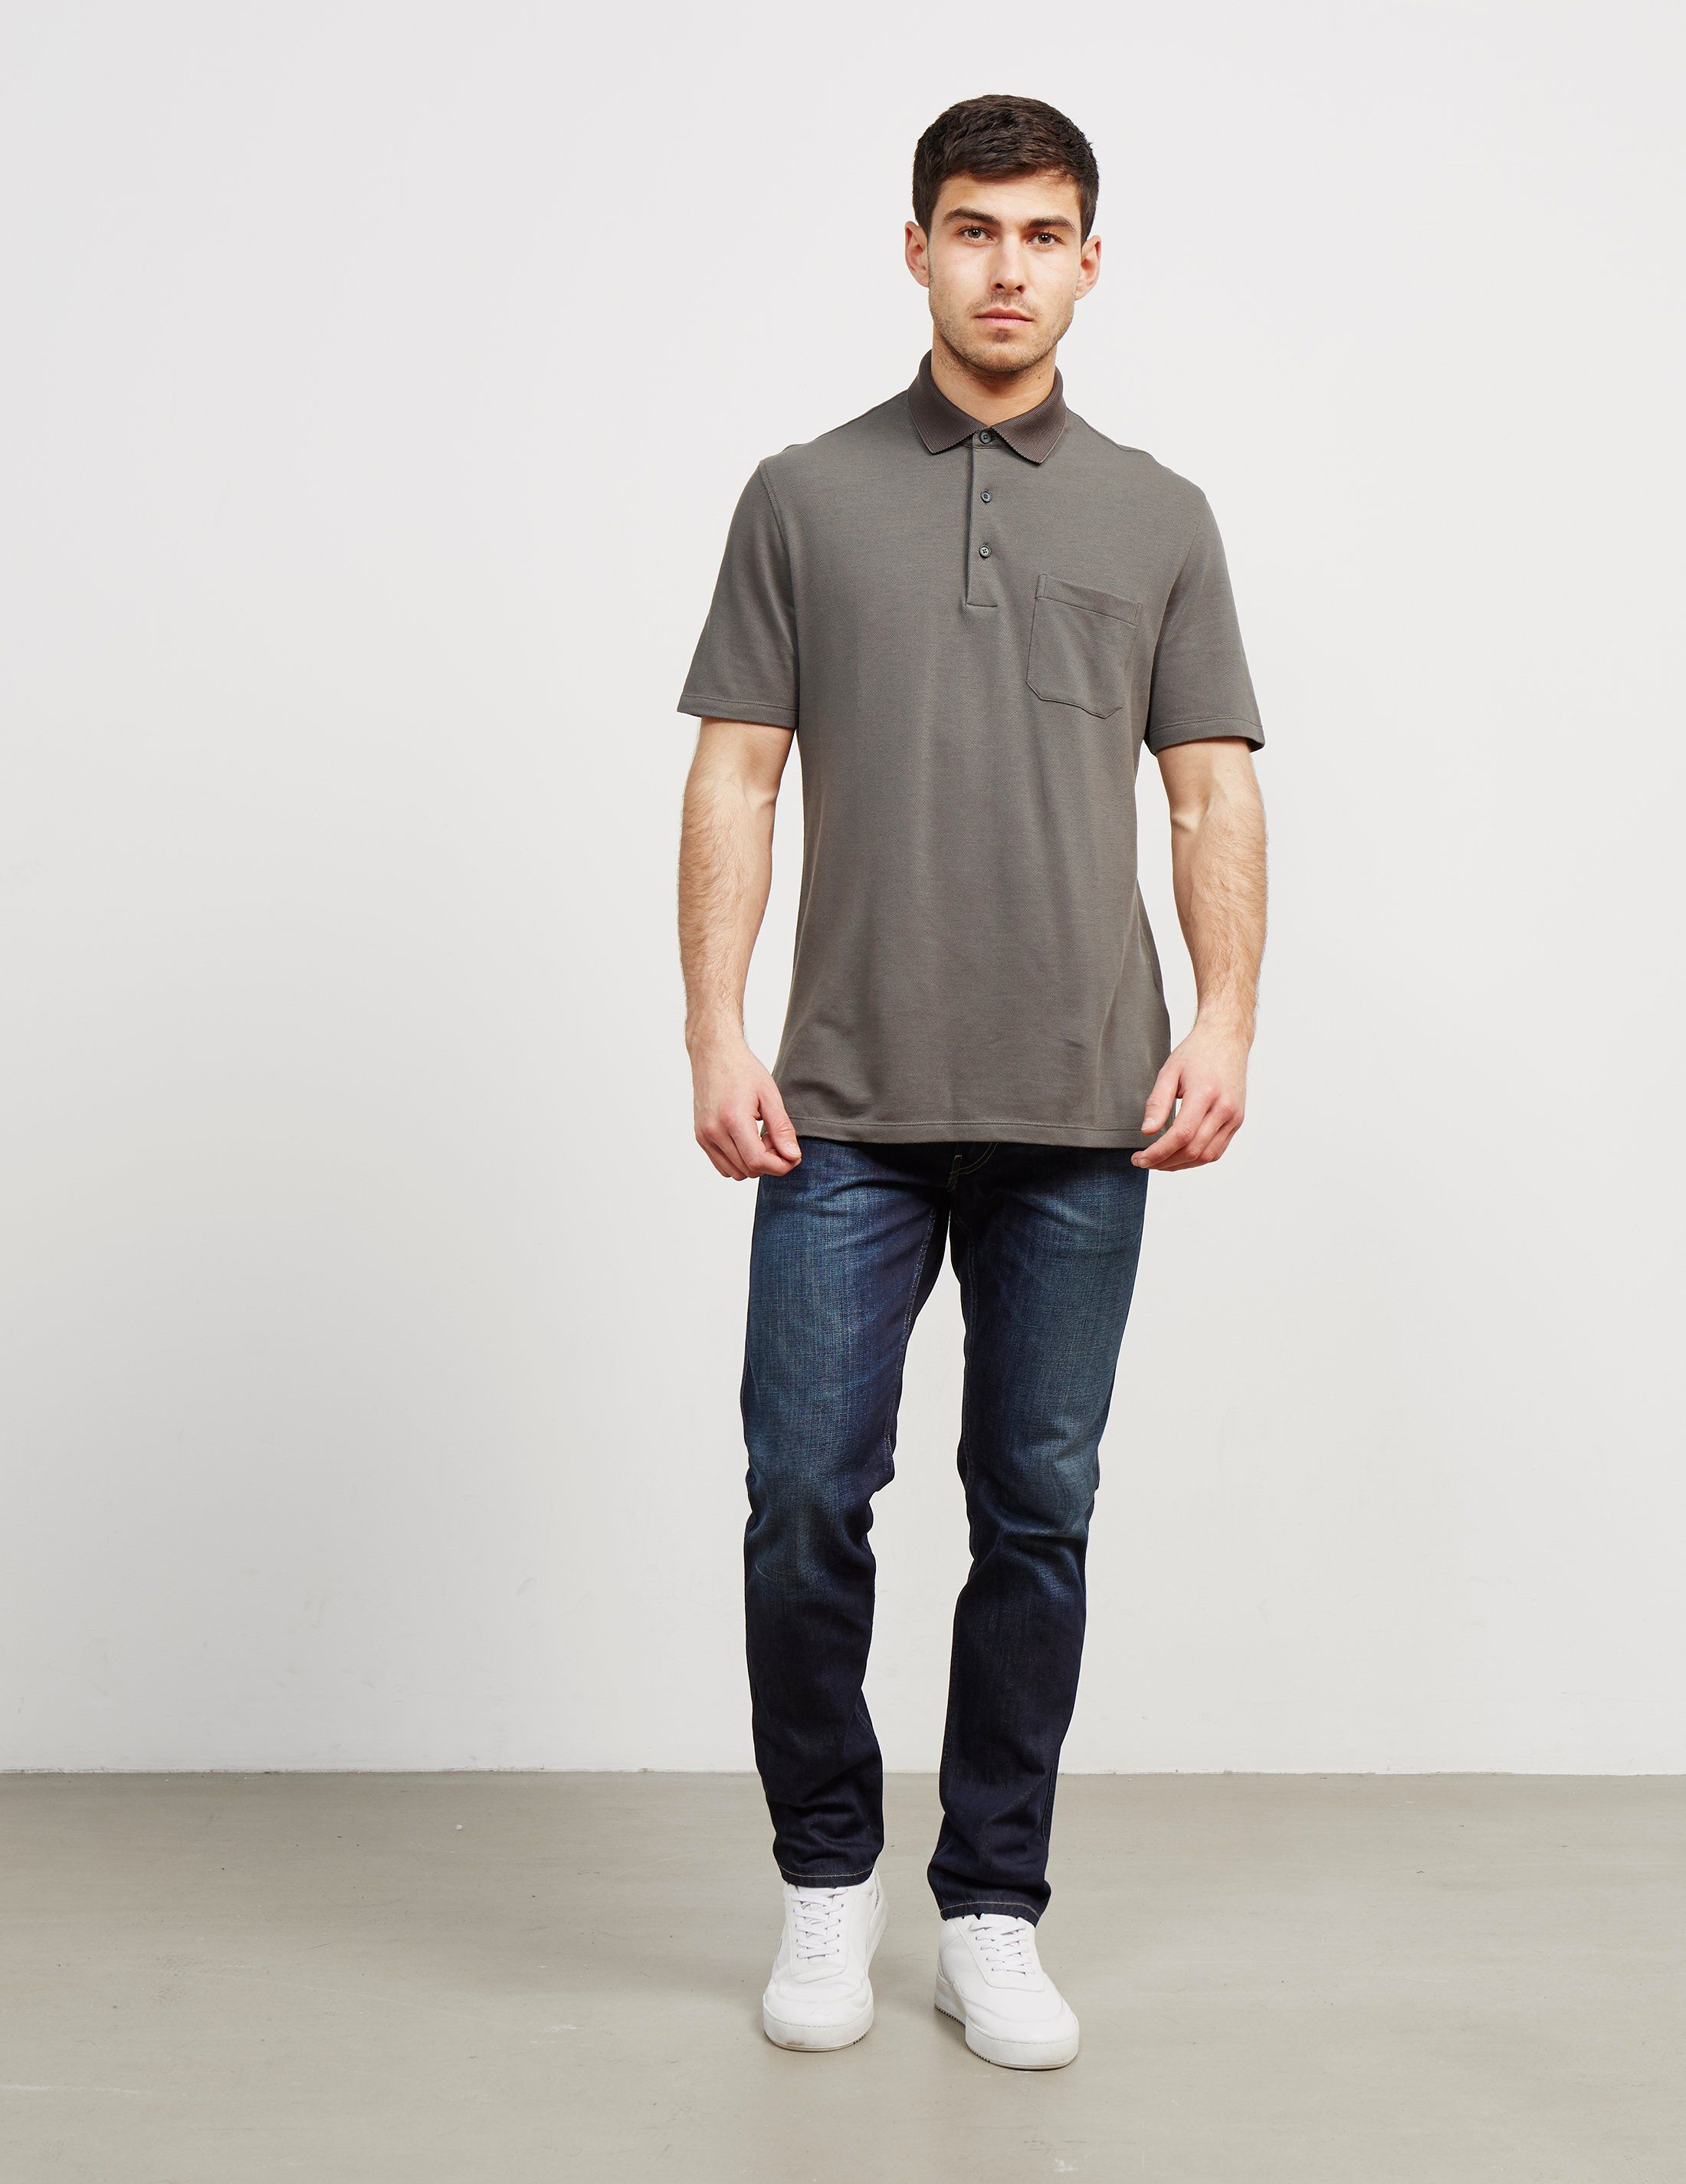 Z Zegna Pocket Short Sleeve Polo Shirt